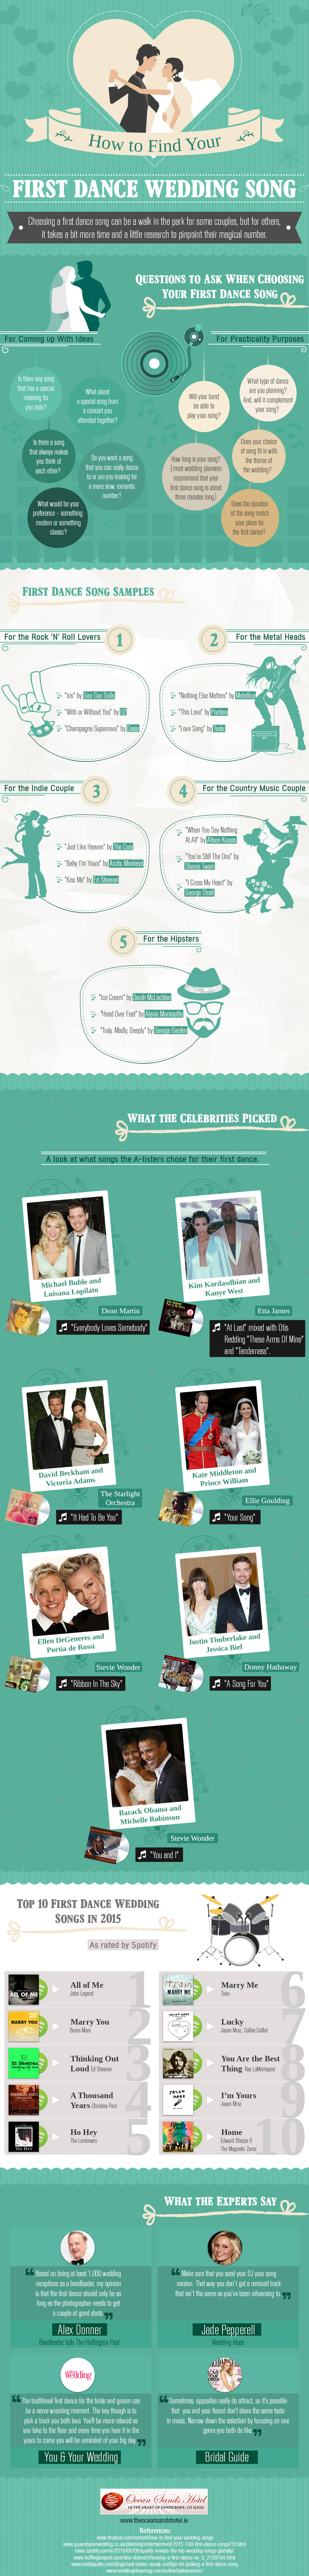 How to Find Your First Dance Wedding Song